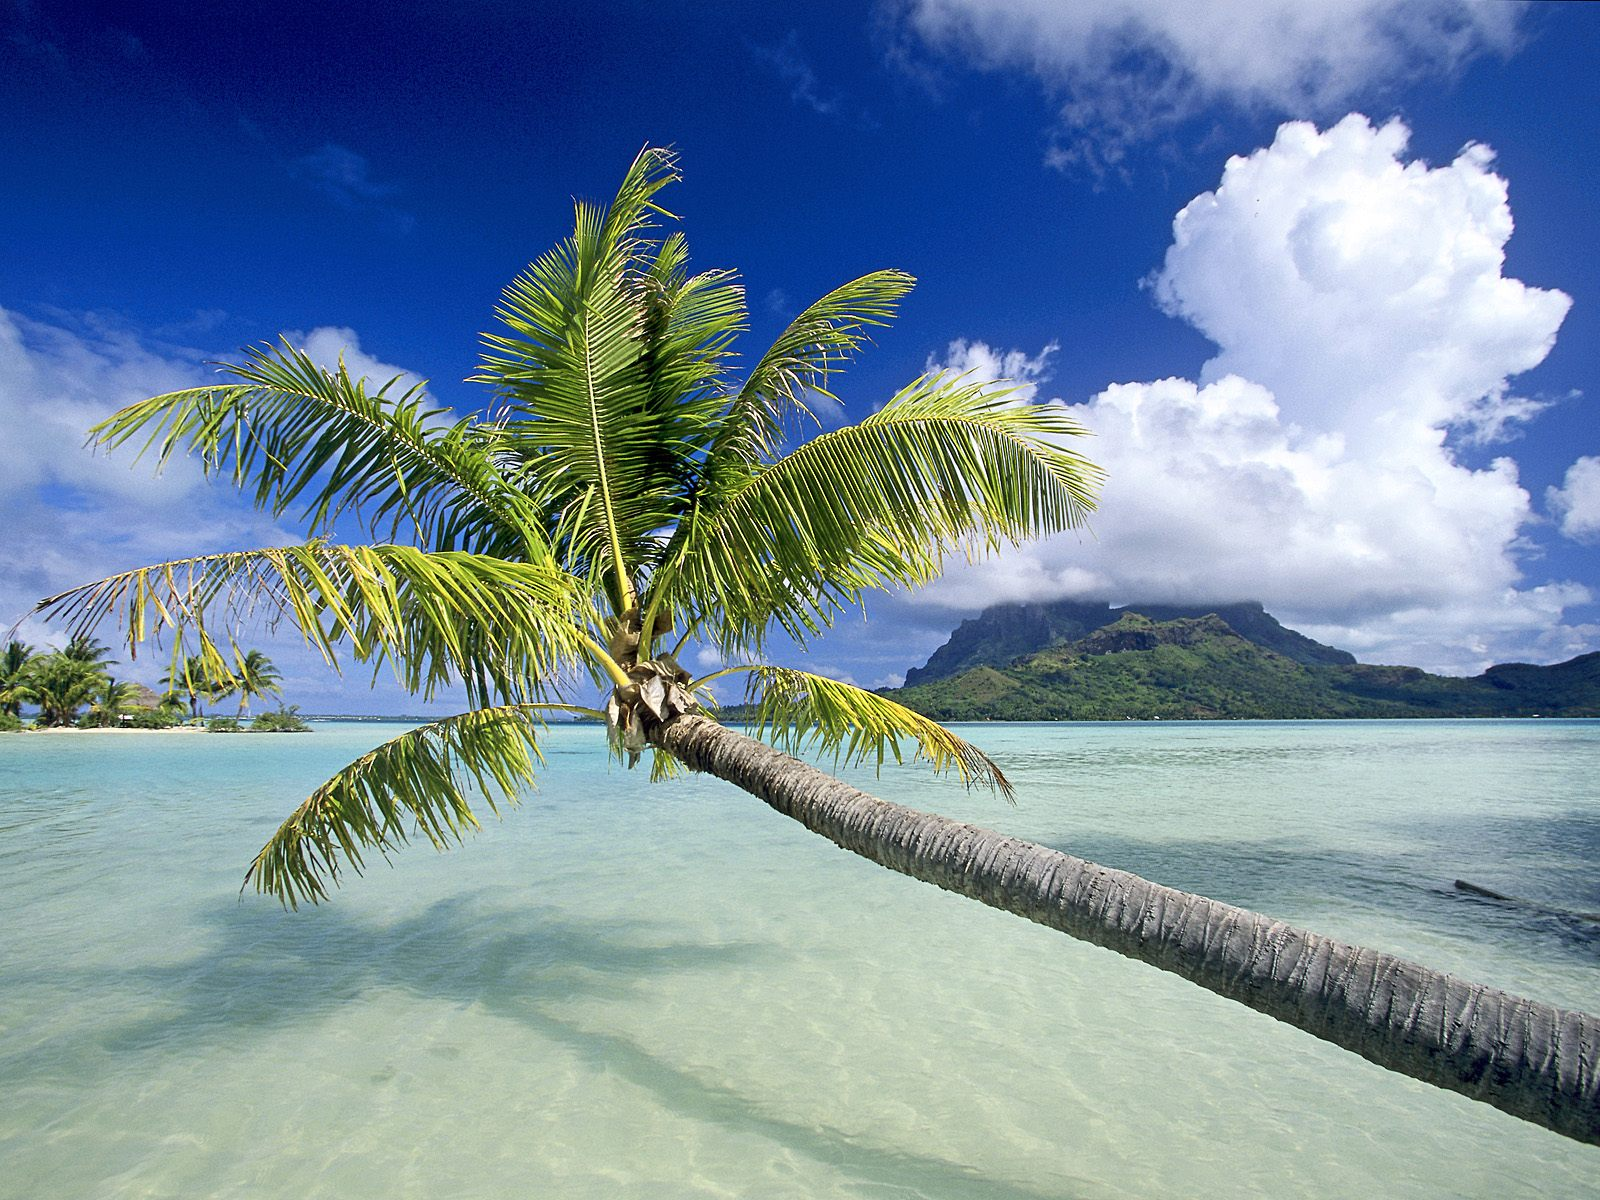 Hd Tropical Island Beach Paradise Wallpapers And Backgrounds: World Visits: Tropical Island In Germany Cool Photos